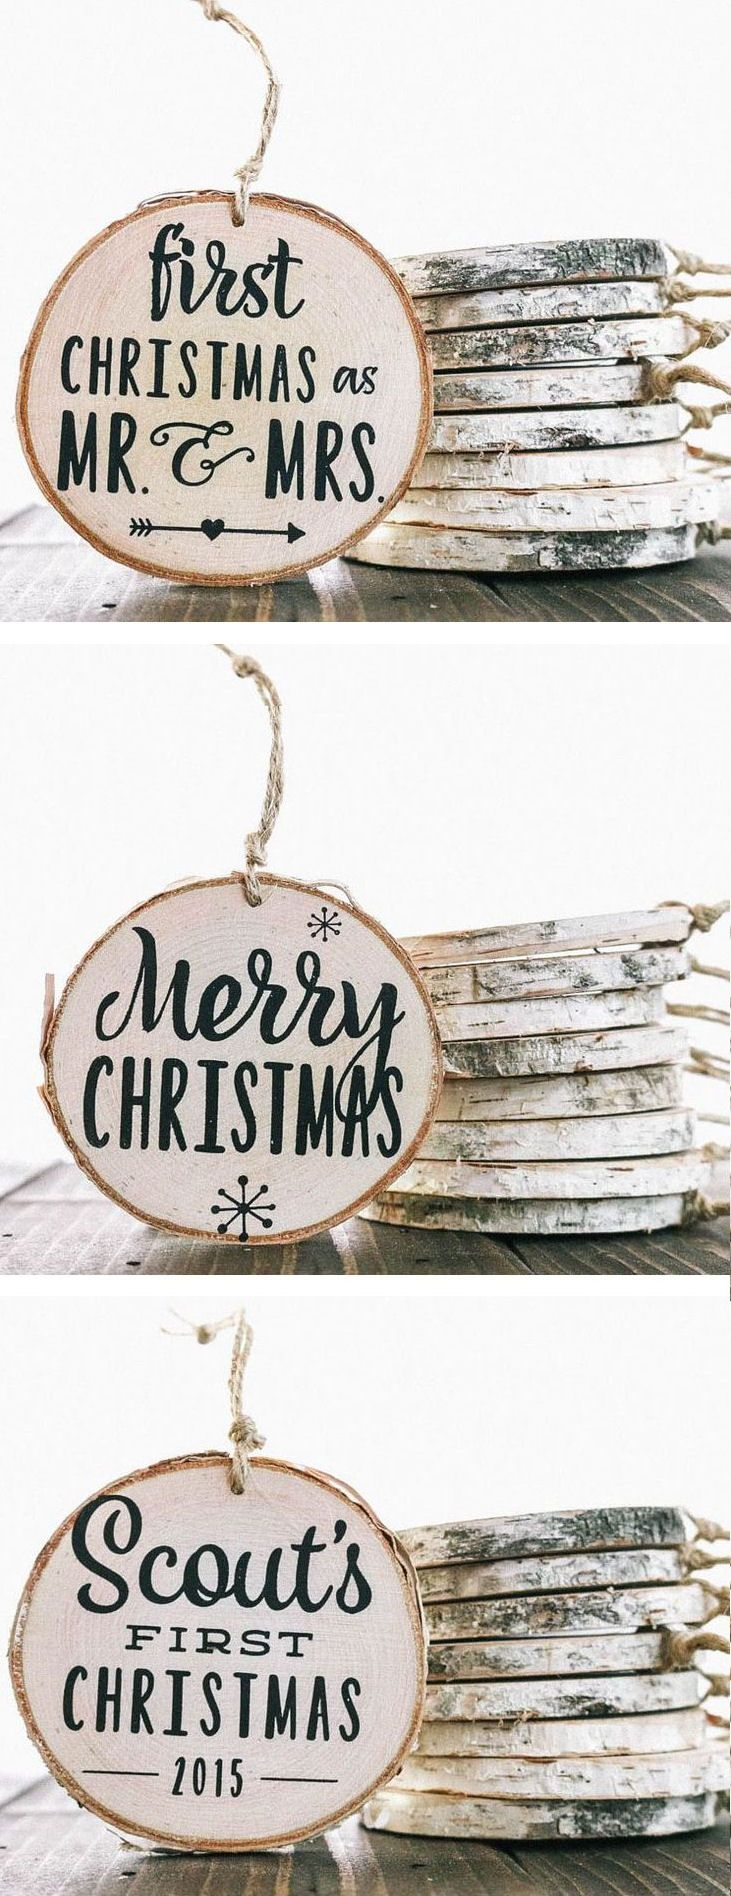 Plaid monograms natural wood ornaments feathers and i couldn t - First Home Birch Wood Ornament